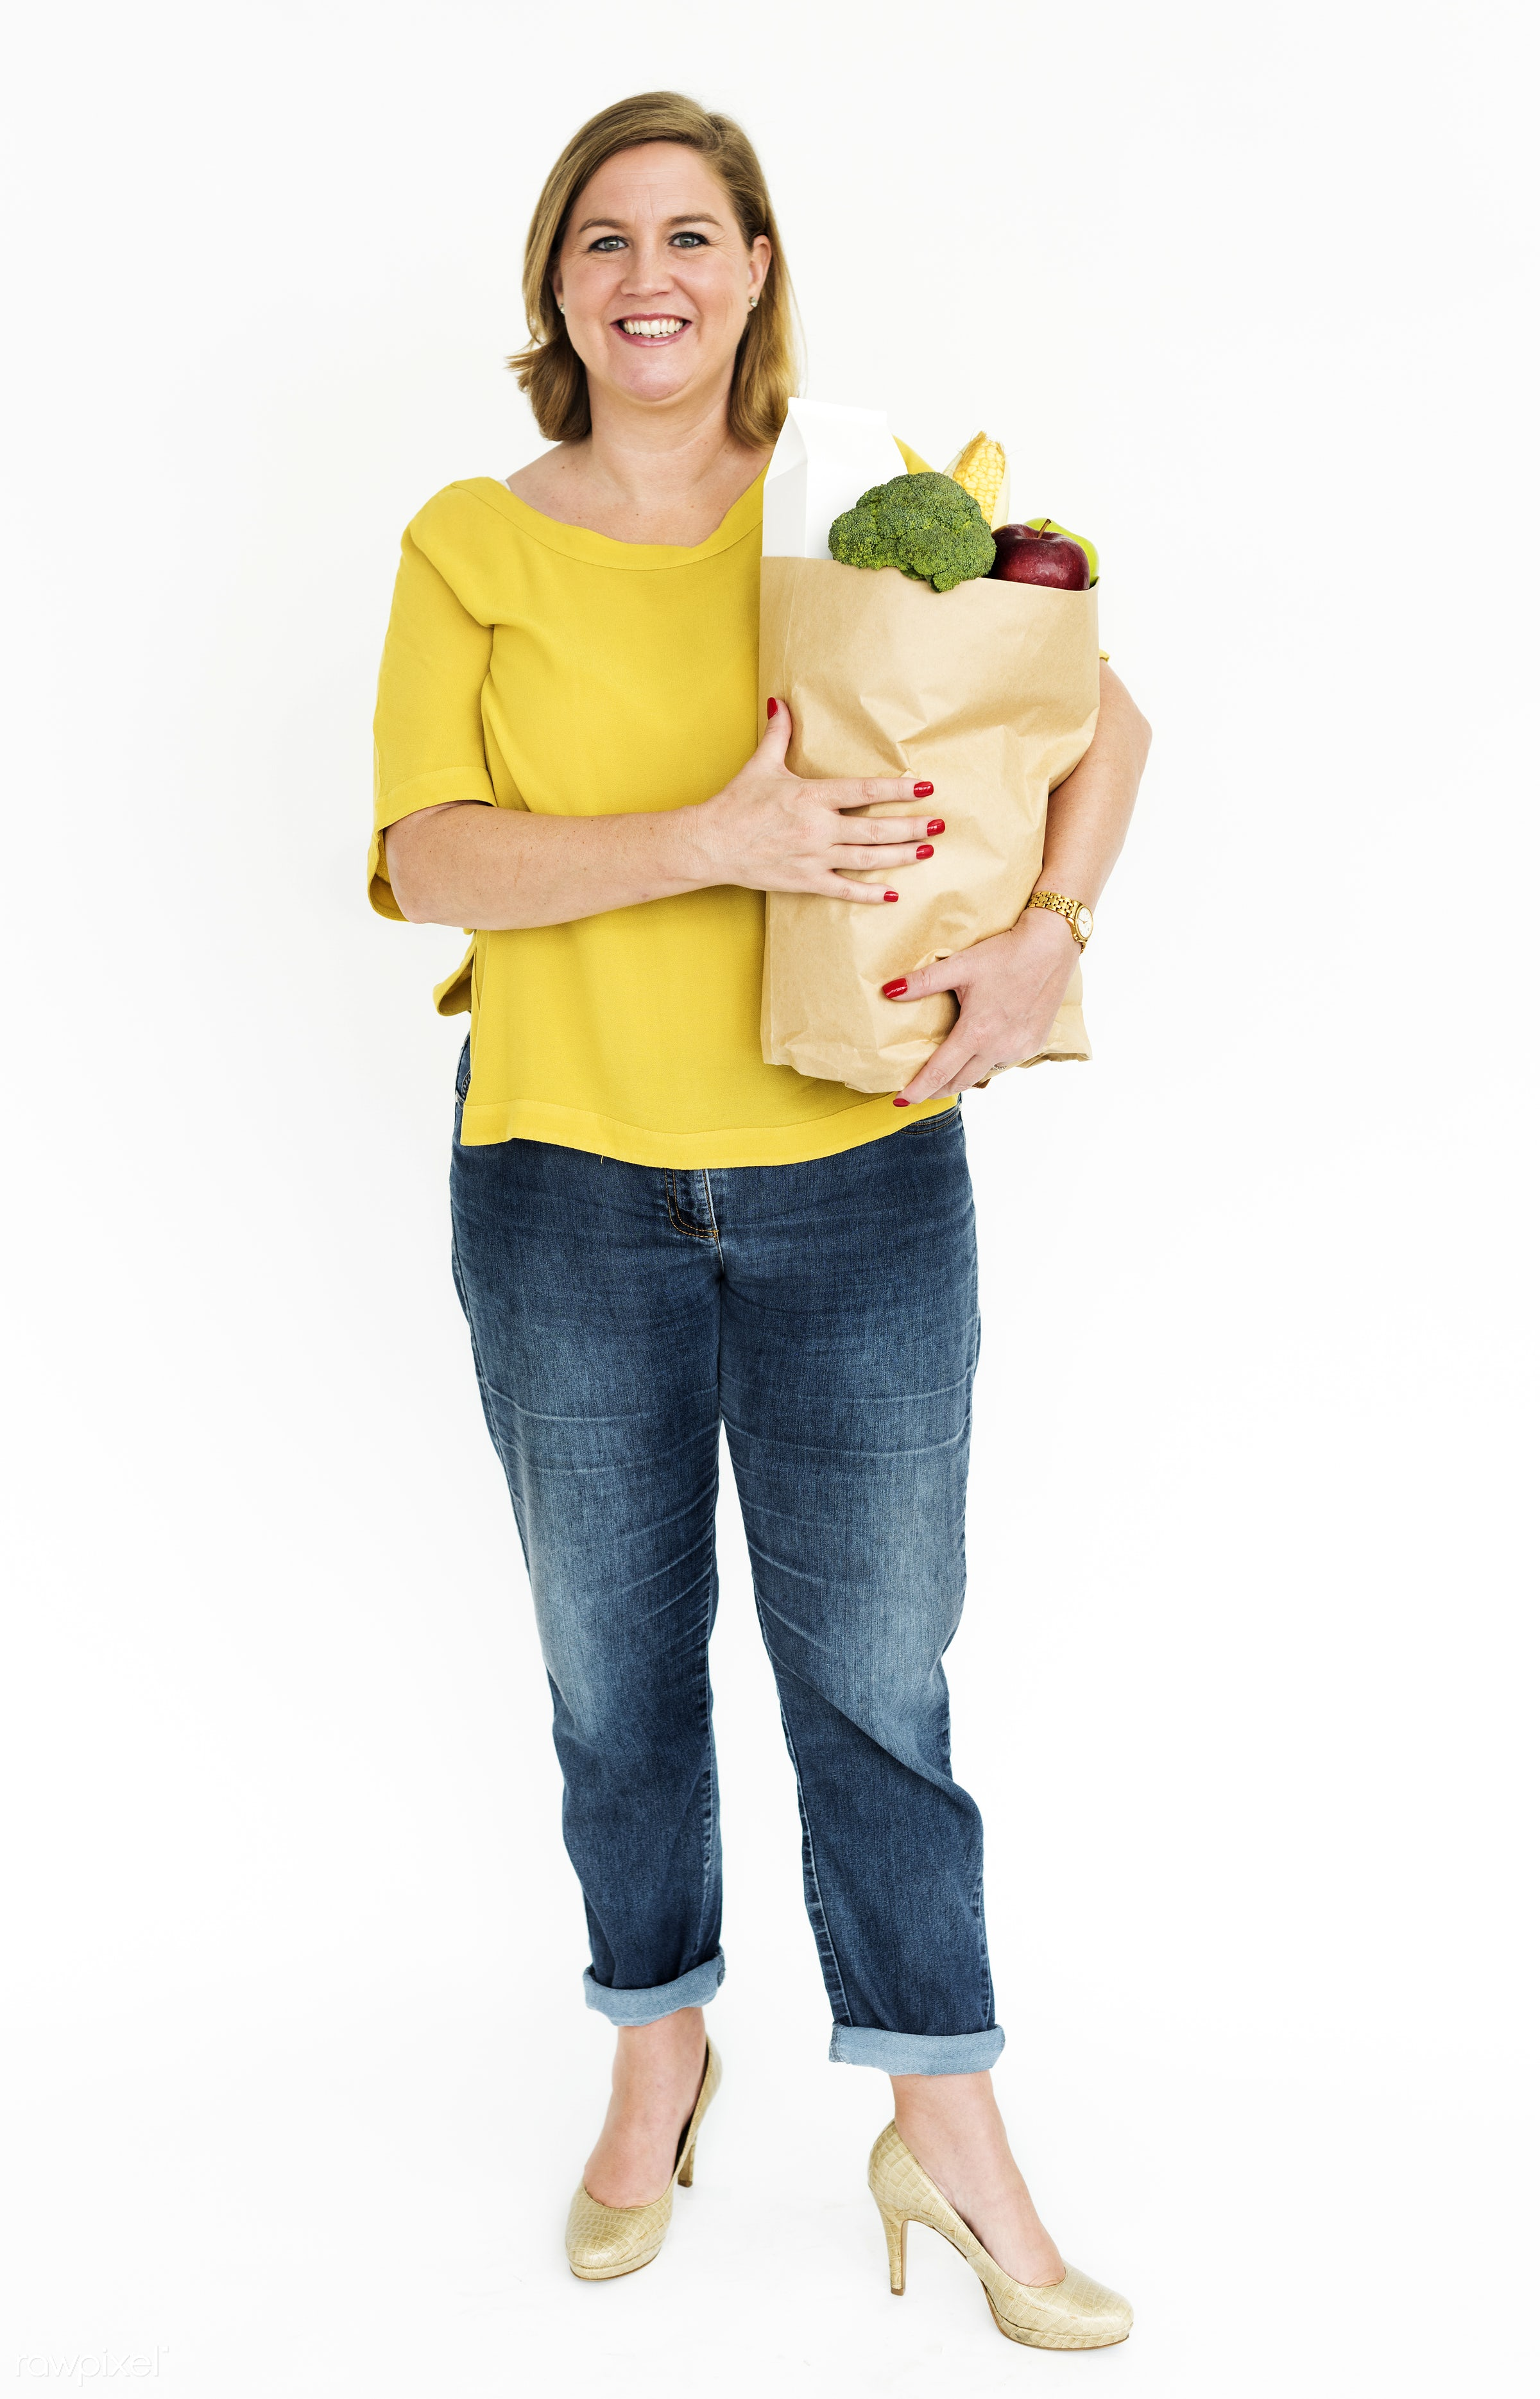 studio, grocery, person, holding, one, people, caucasian, woman, happy, errand, casual, buying, cheerful, smiling, isolated...